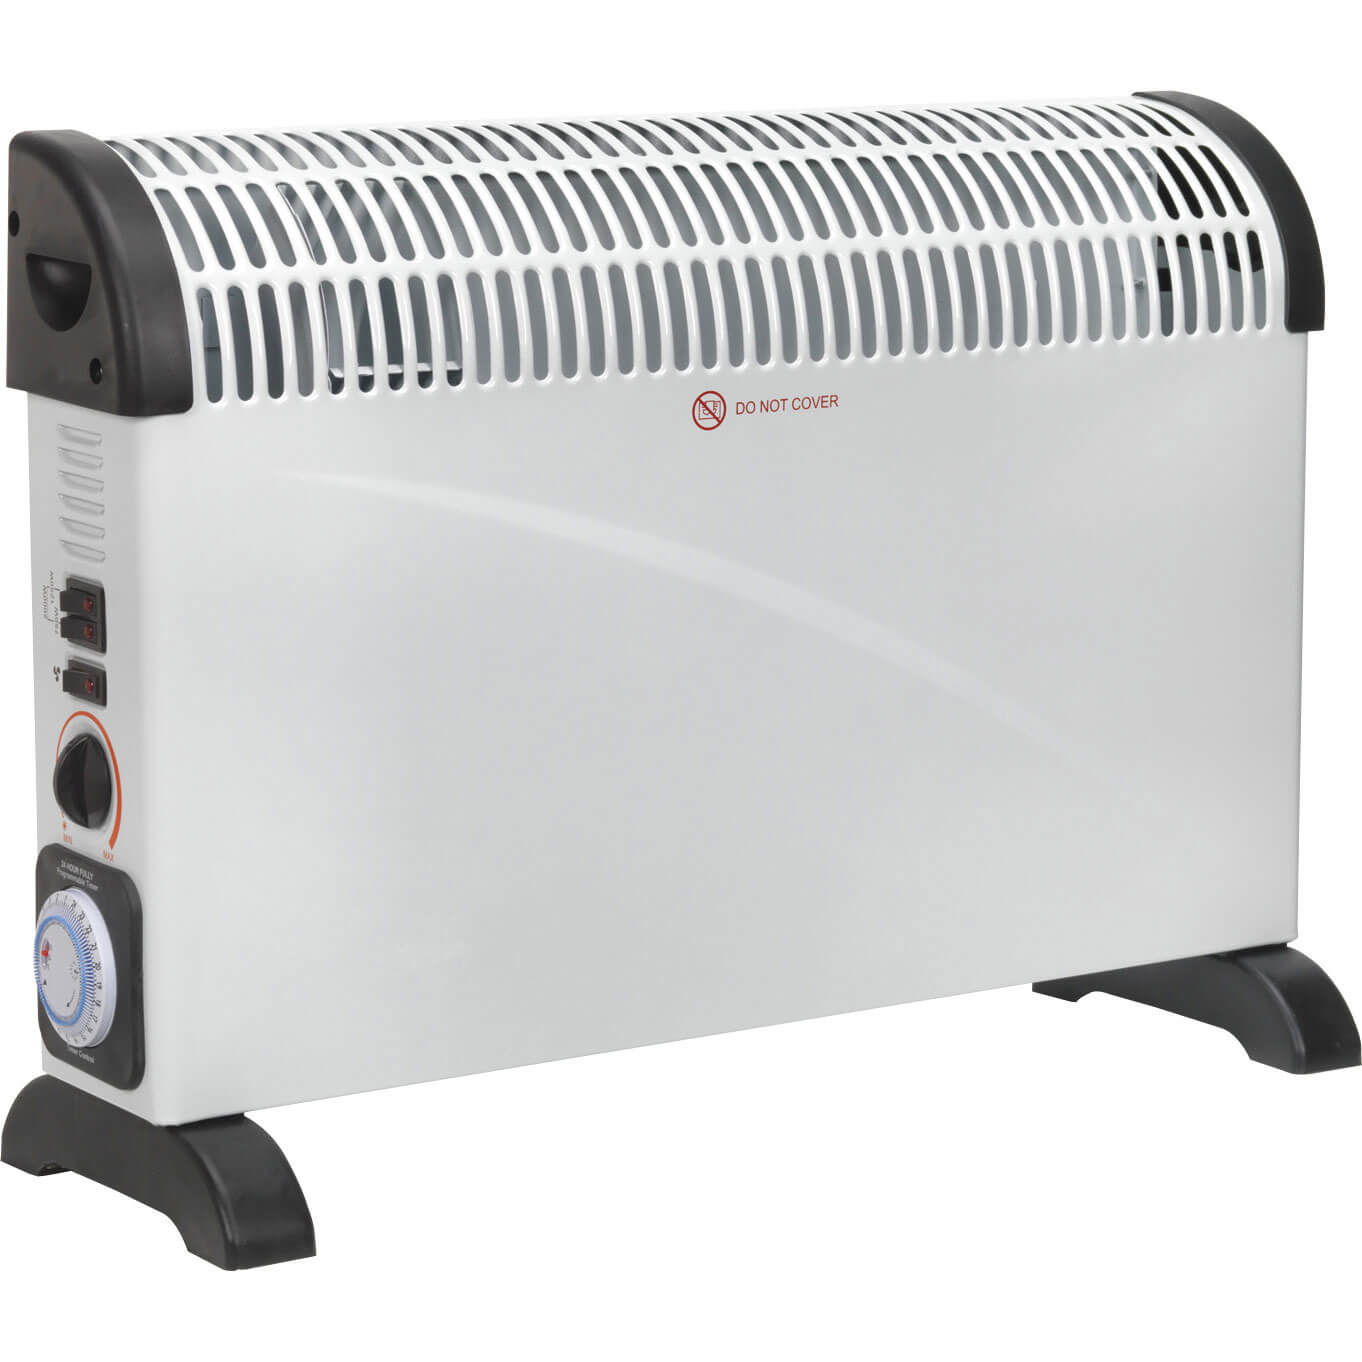 Image of Sealey CD2005TT Electric Convector Heater Turbo Fan 2000W 240v